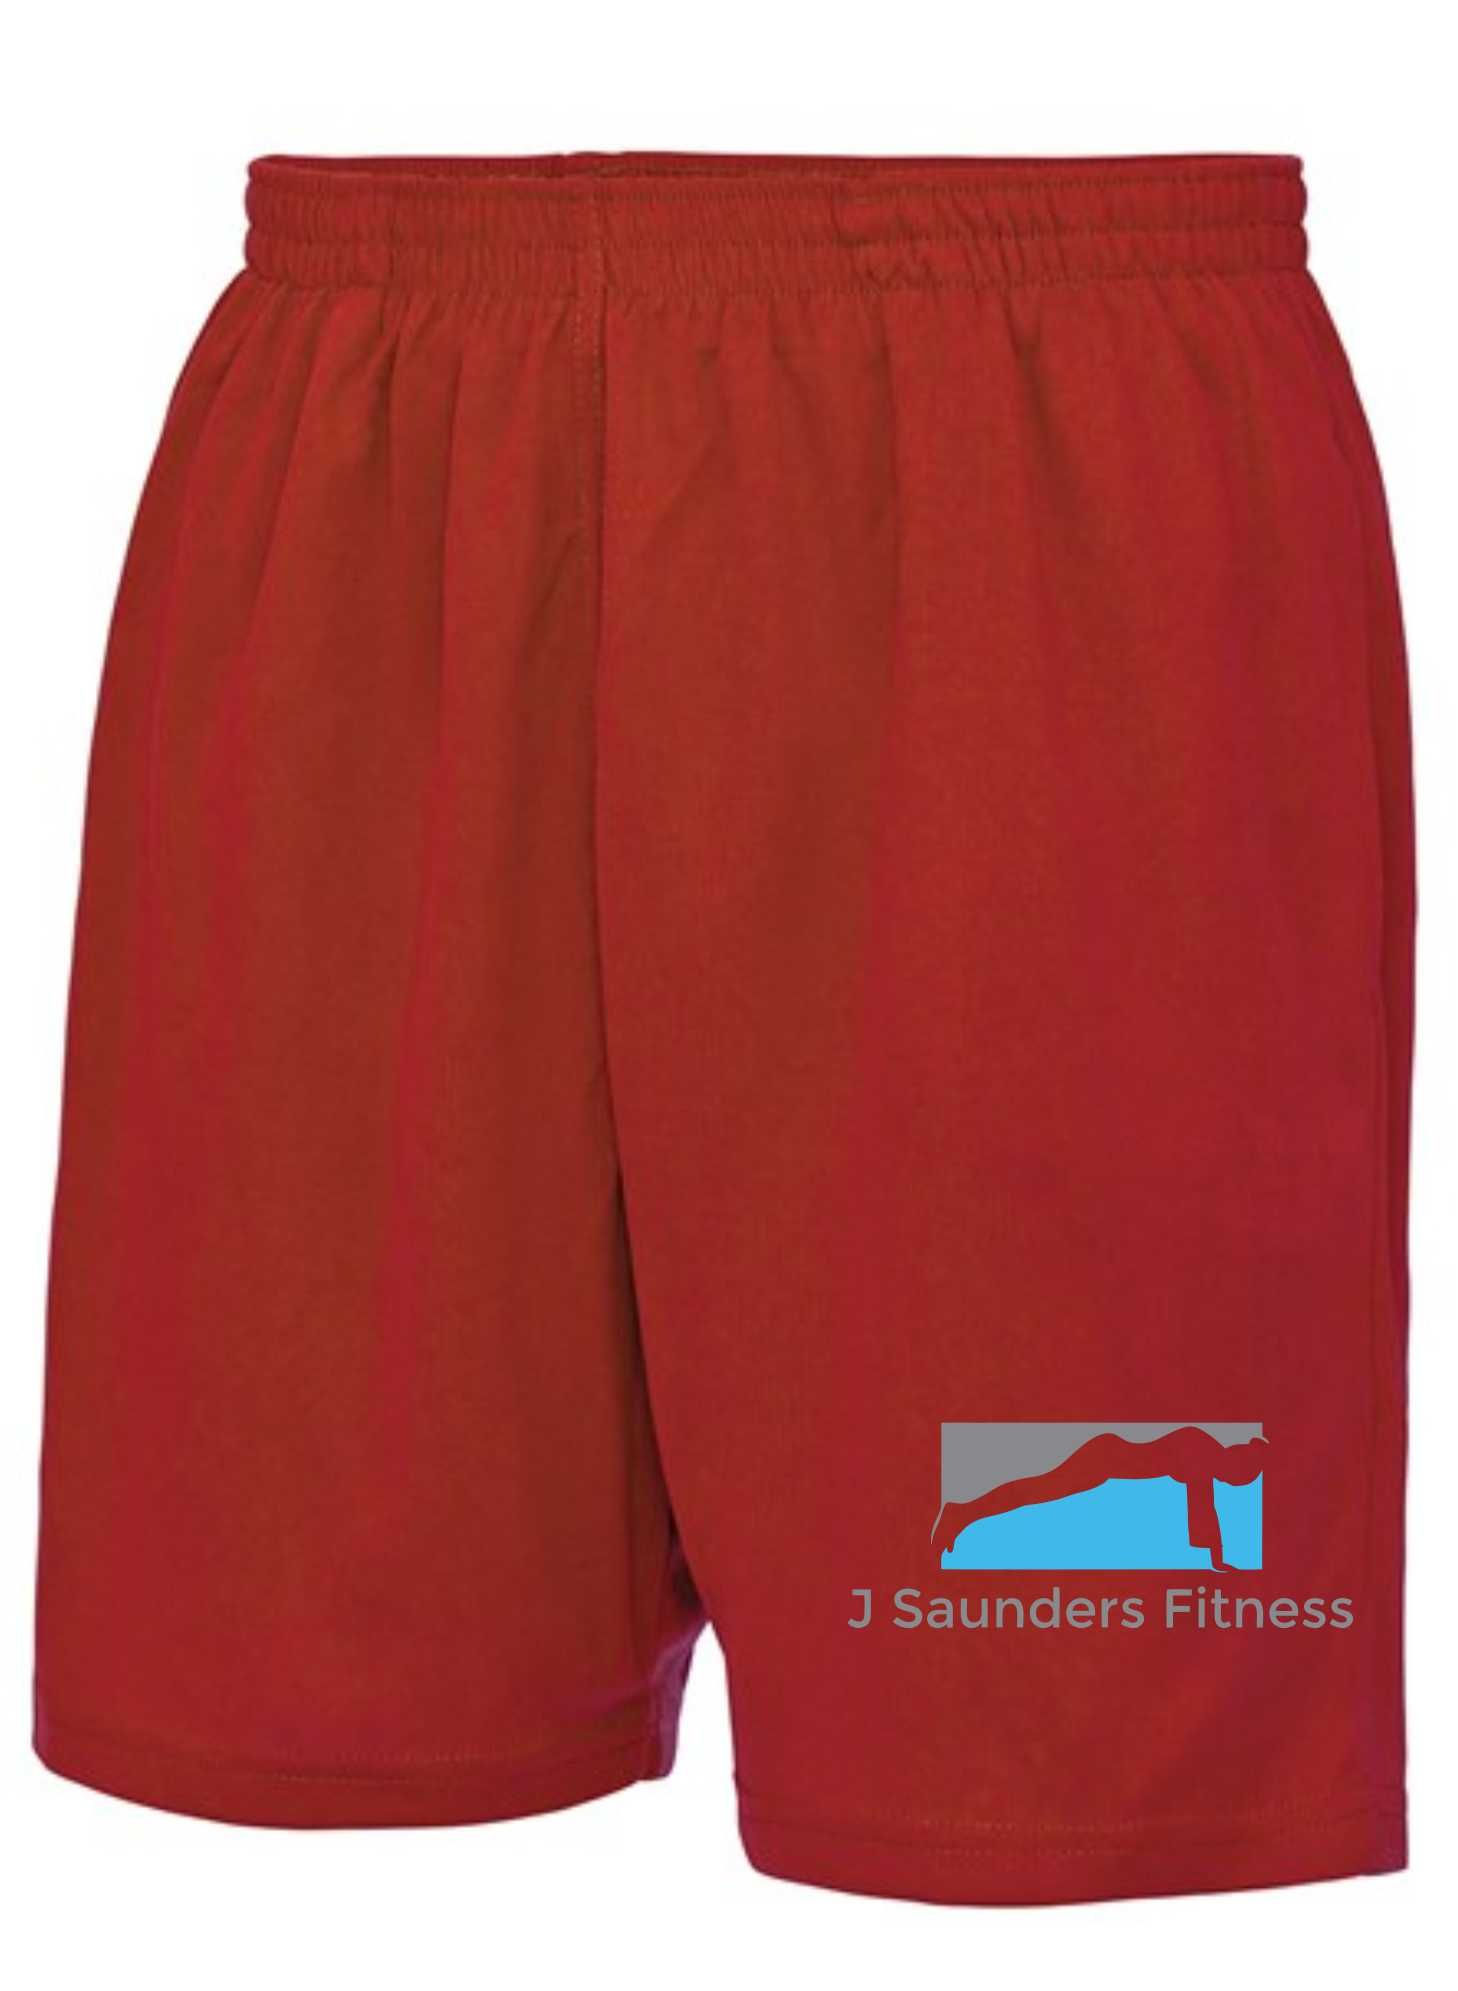 J Saunders Fitness- Sports Shorts (Unisex)